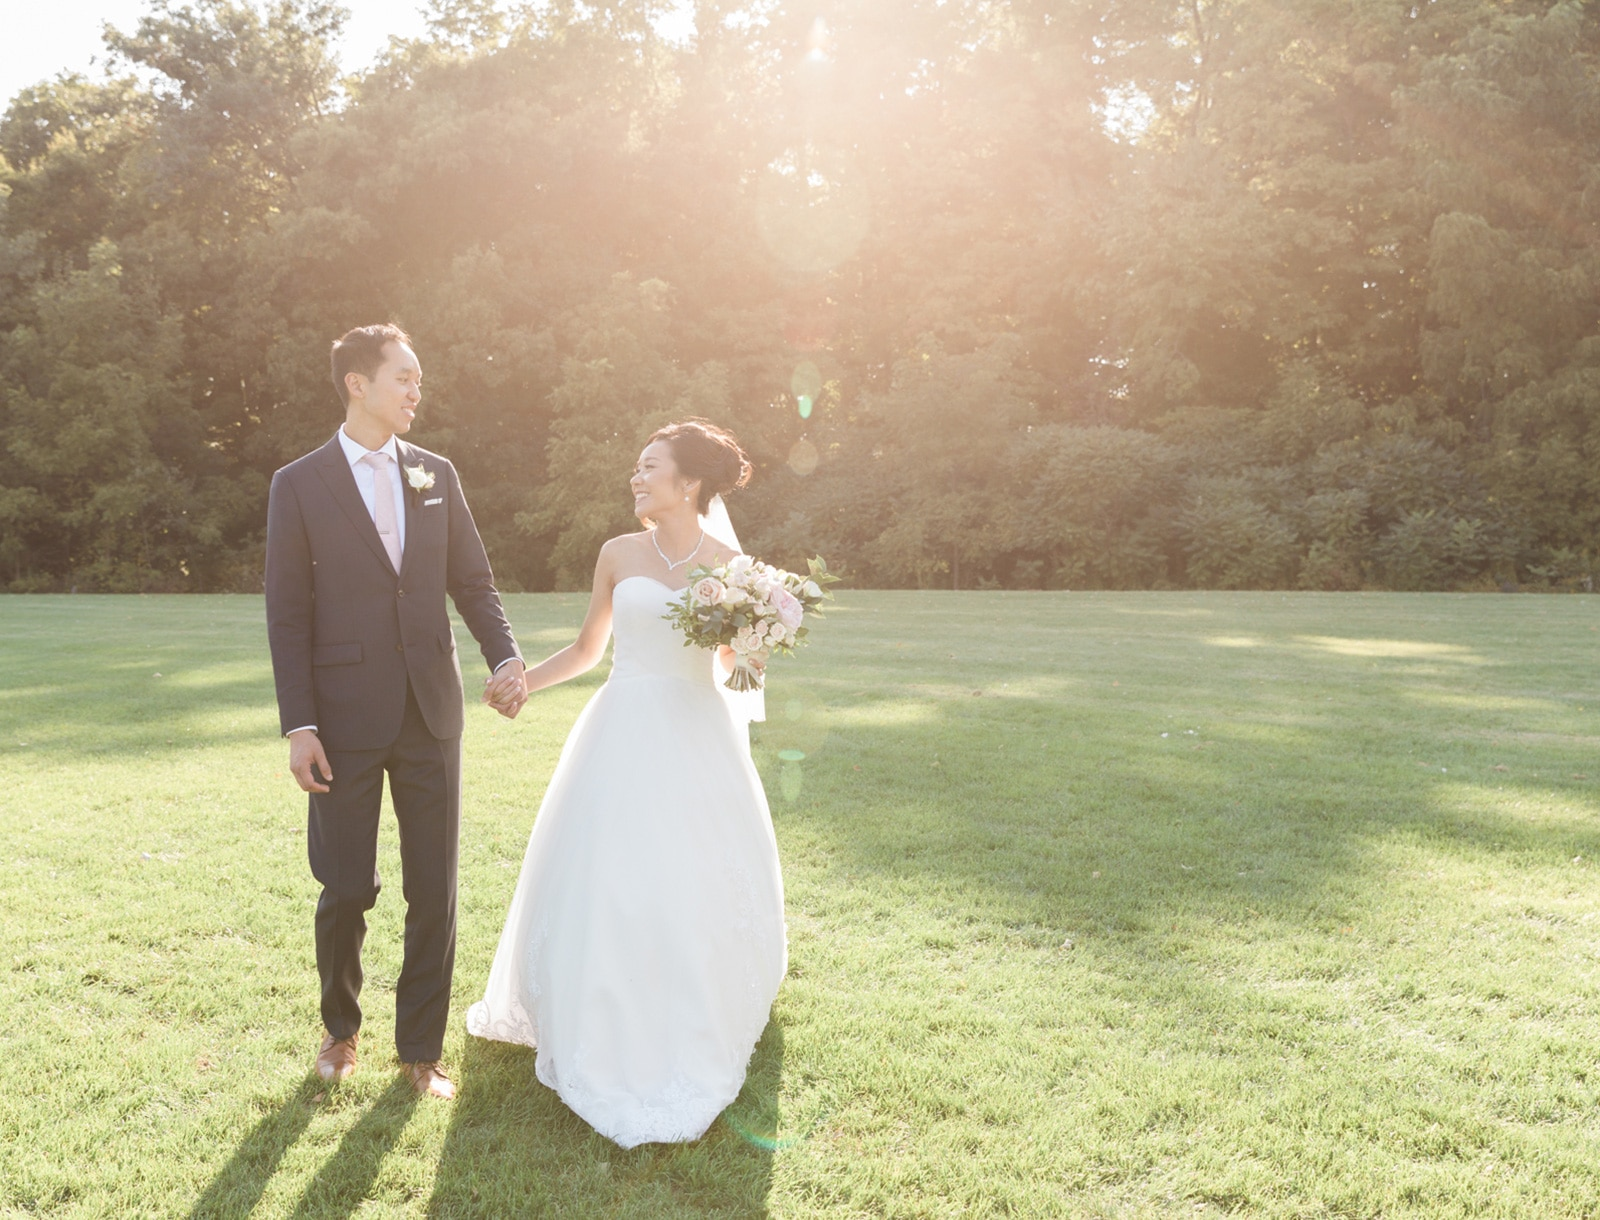 Sweet Church + Chateau Le Parc Wedding: Joelle + Ernest